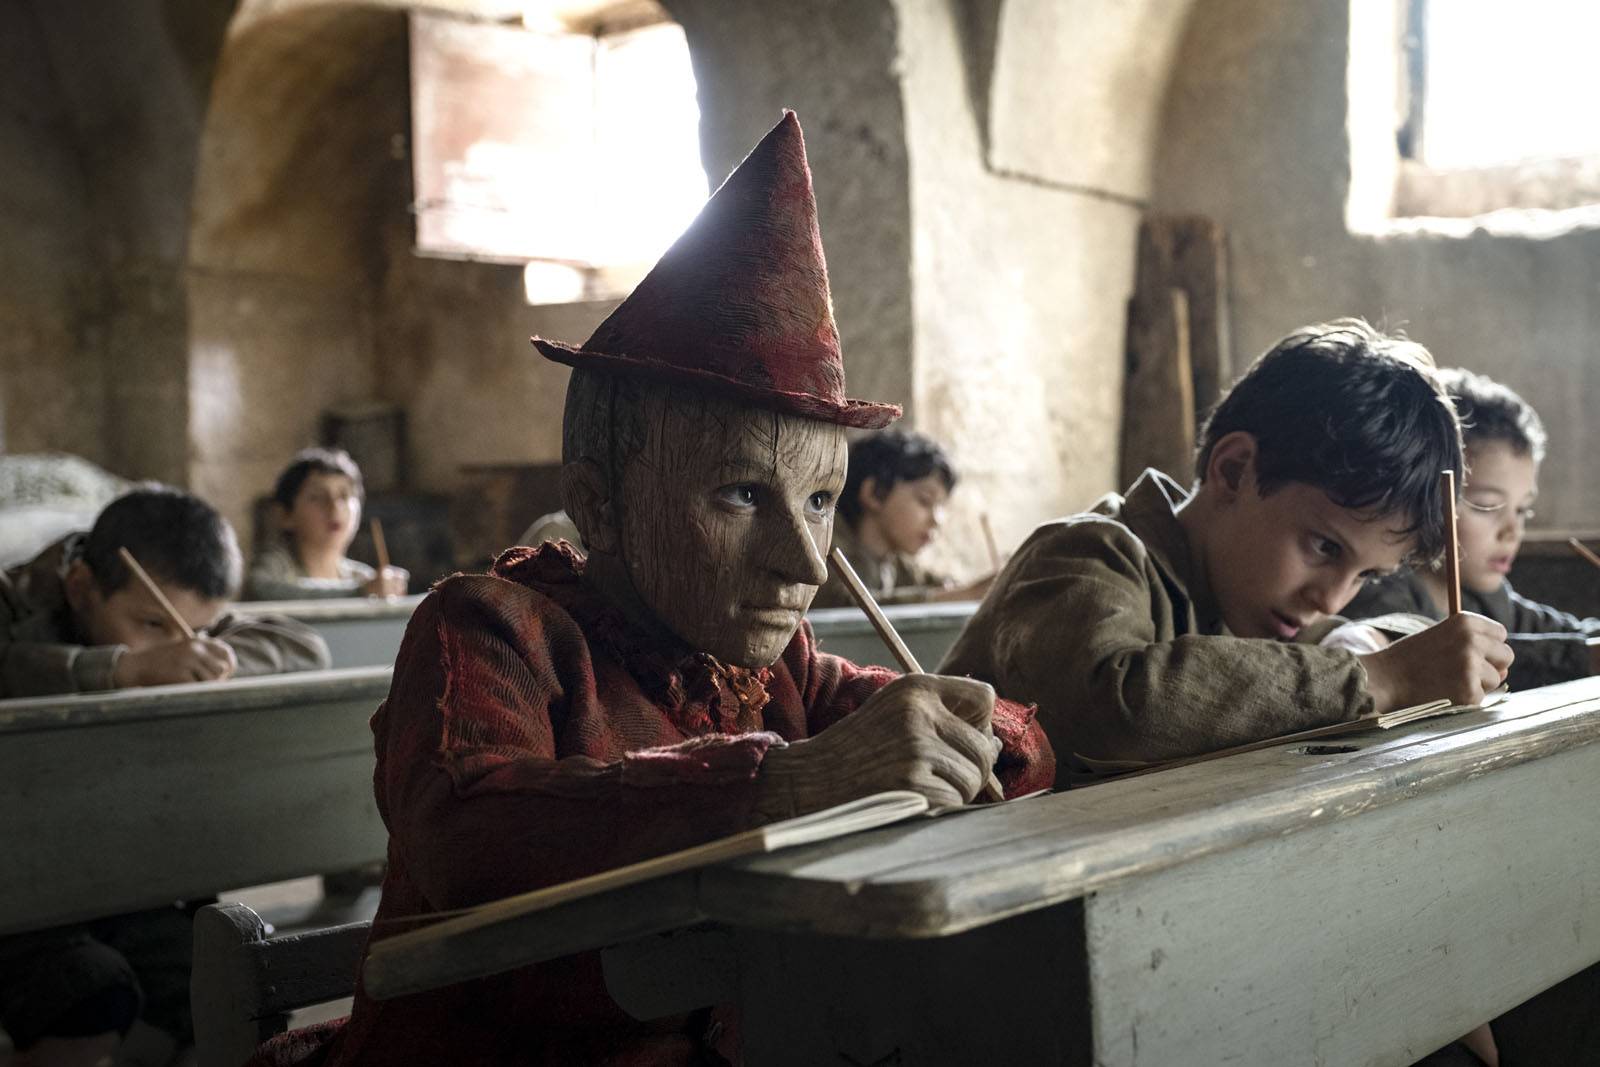 """Pinocchio"" de Matteo Garrone sort exclusivement sur Amazone Prime."